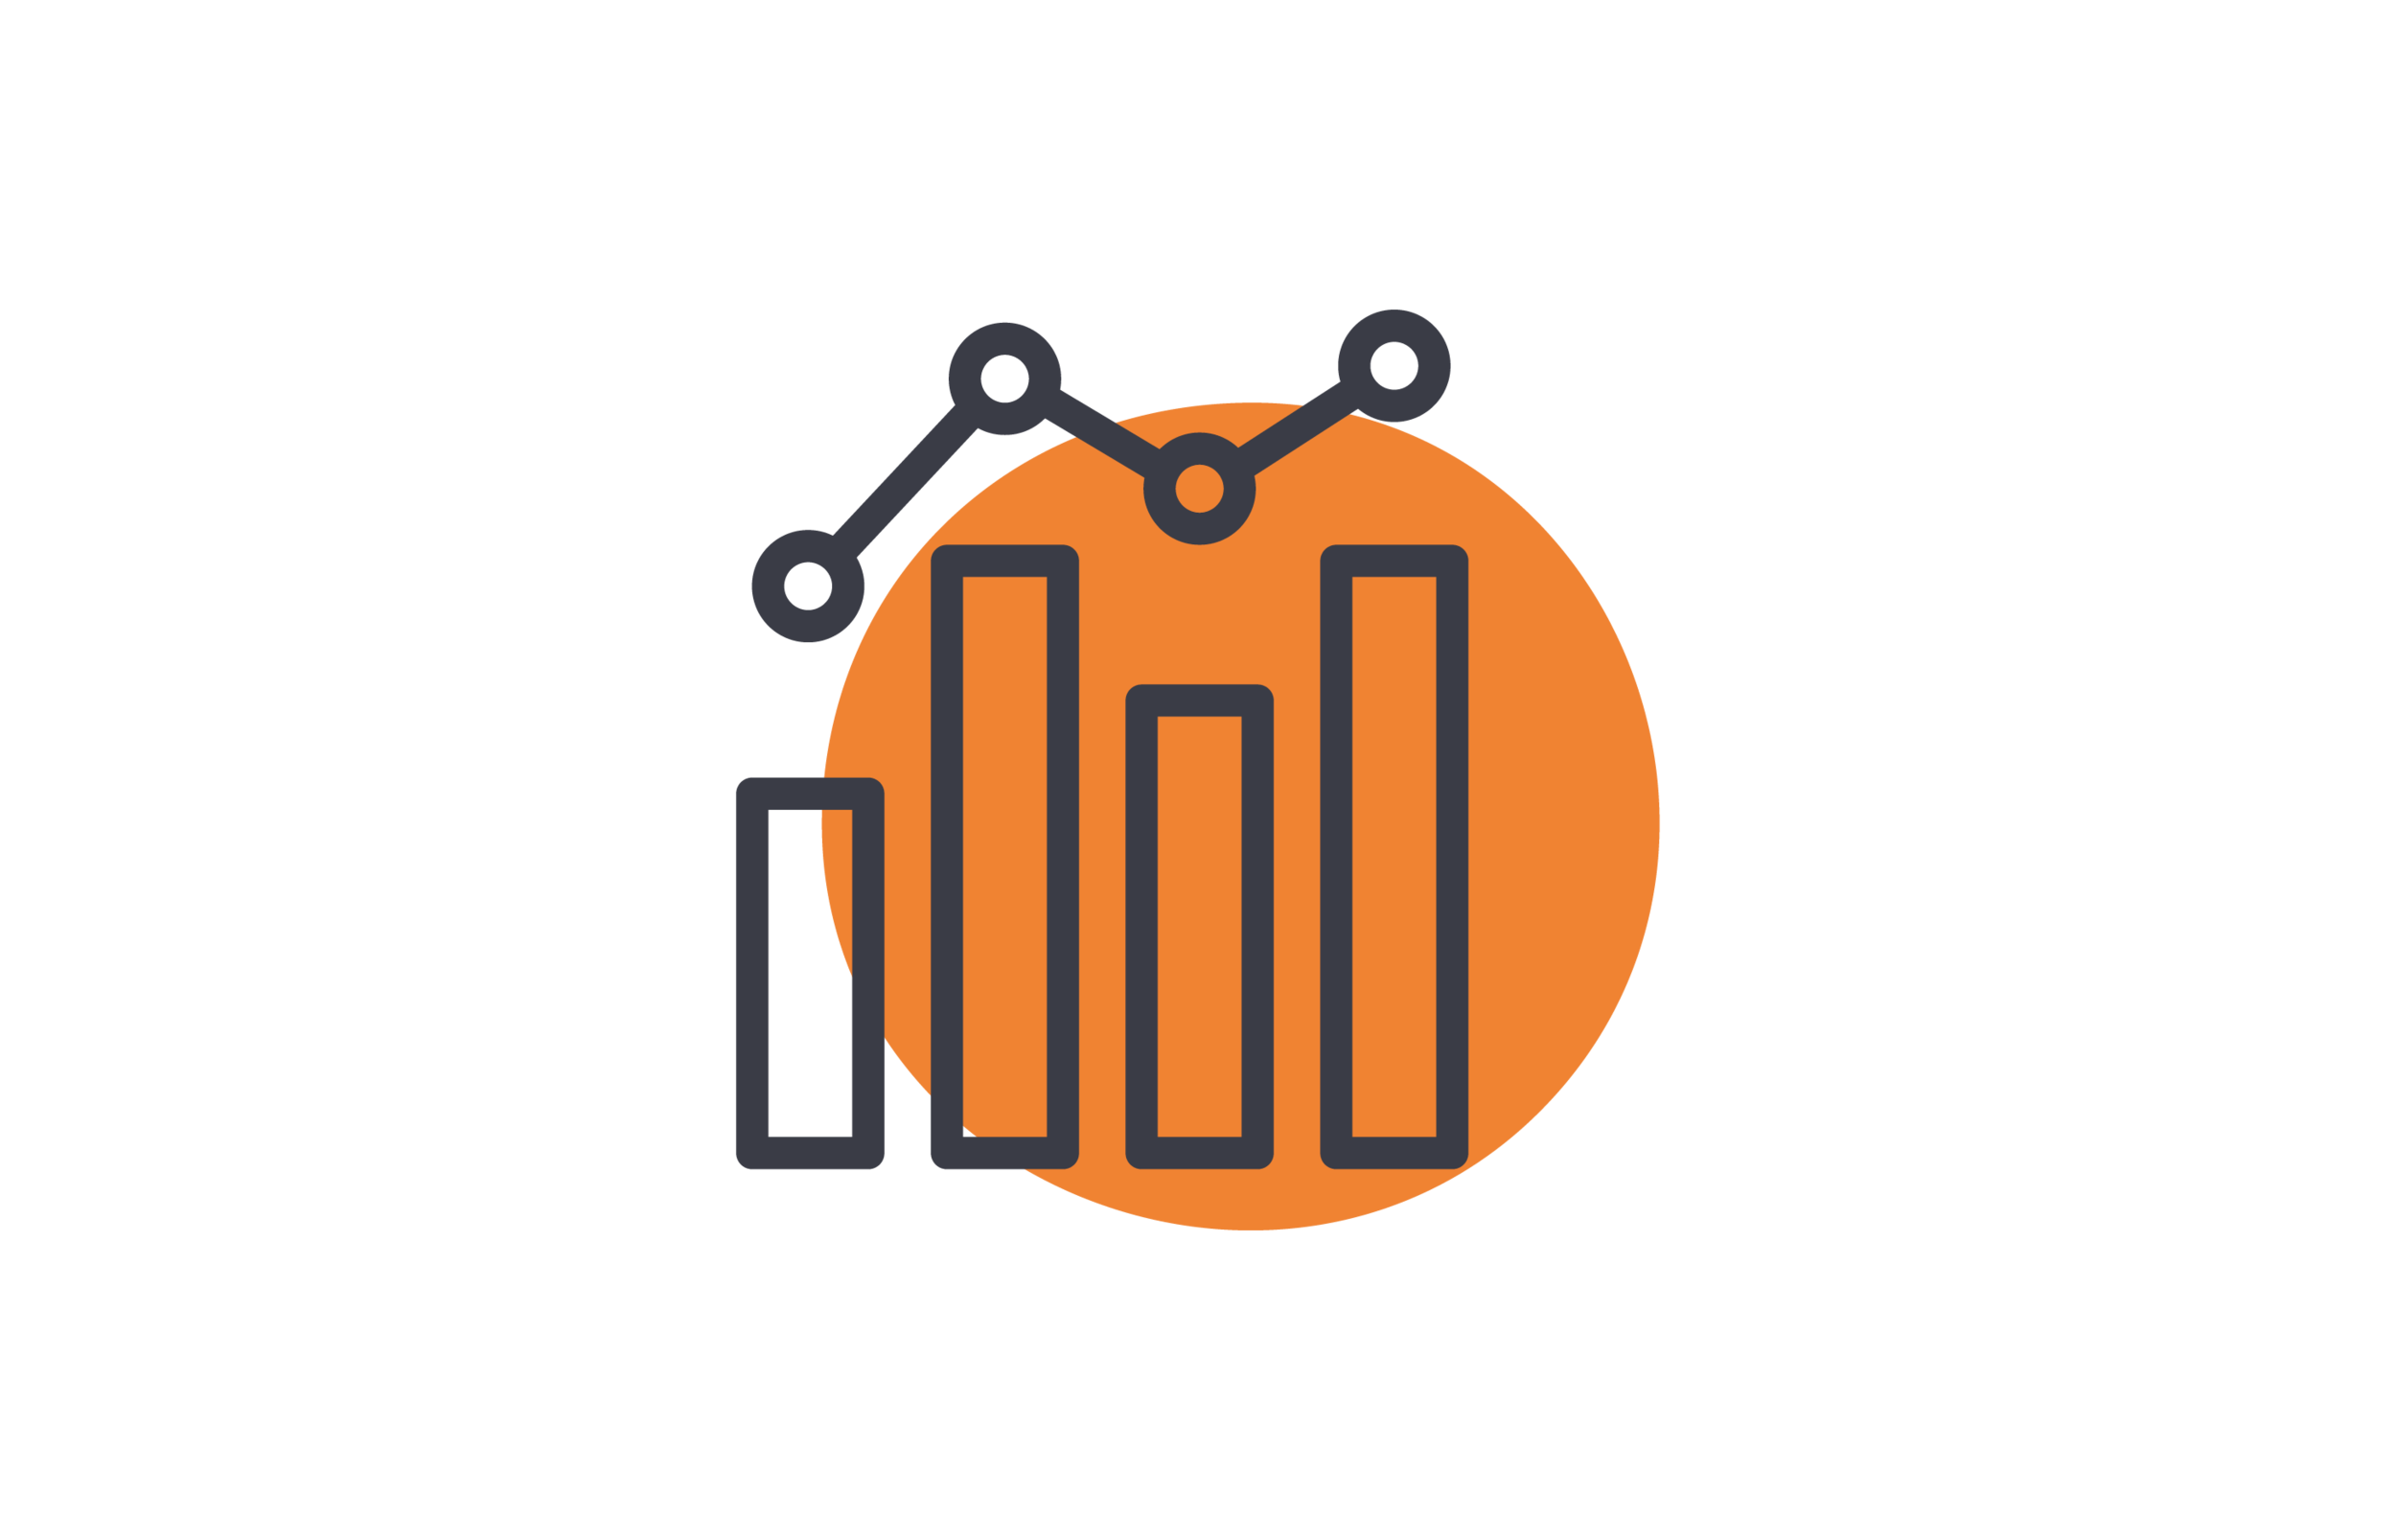 Icon_Data Analytics_Orange.png